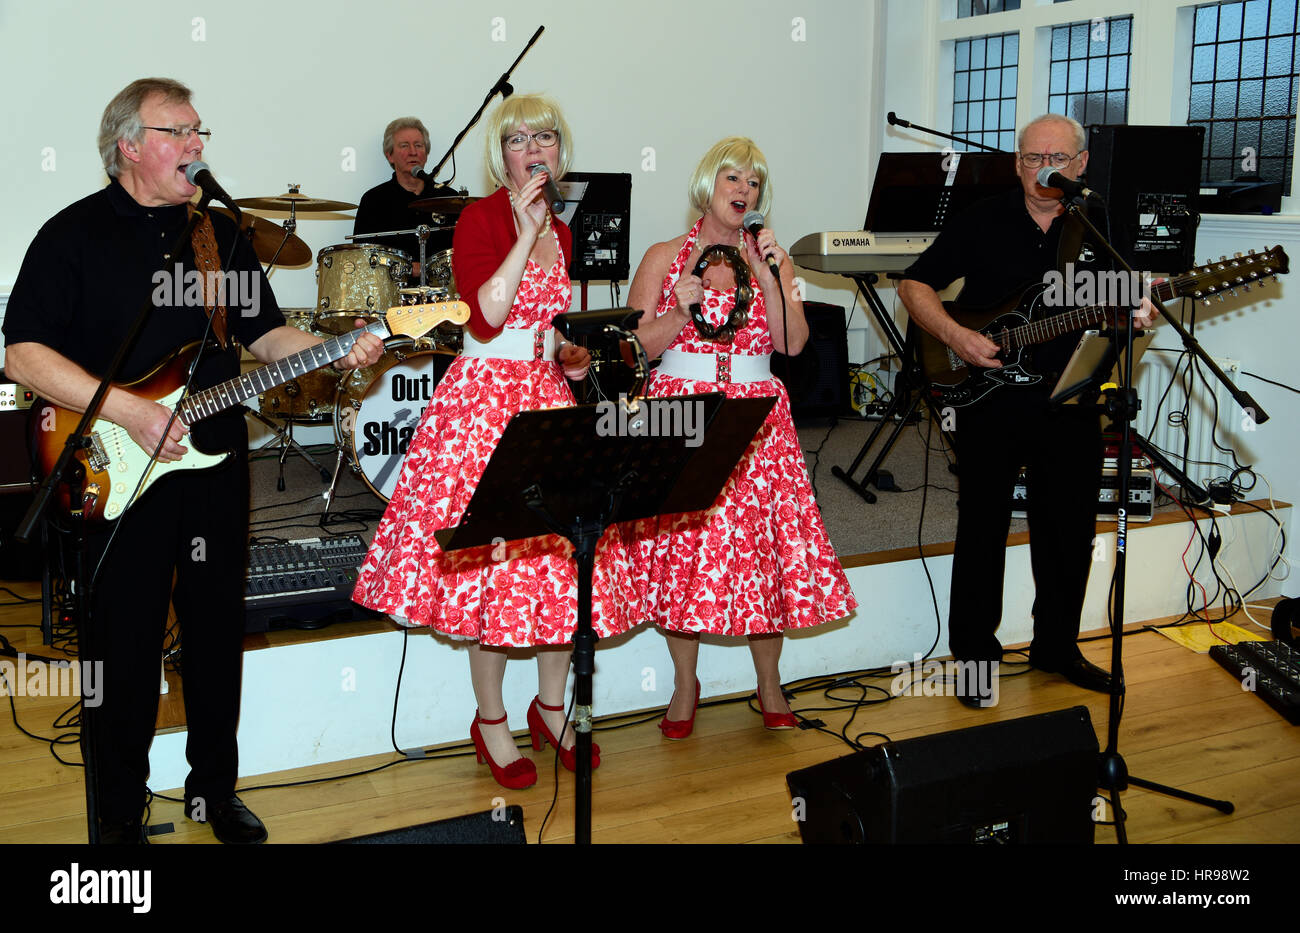 Local band - Out of the Shadows - performing popular songs from the 1960s at a community event organised by the - Stock Image